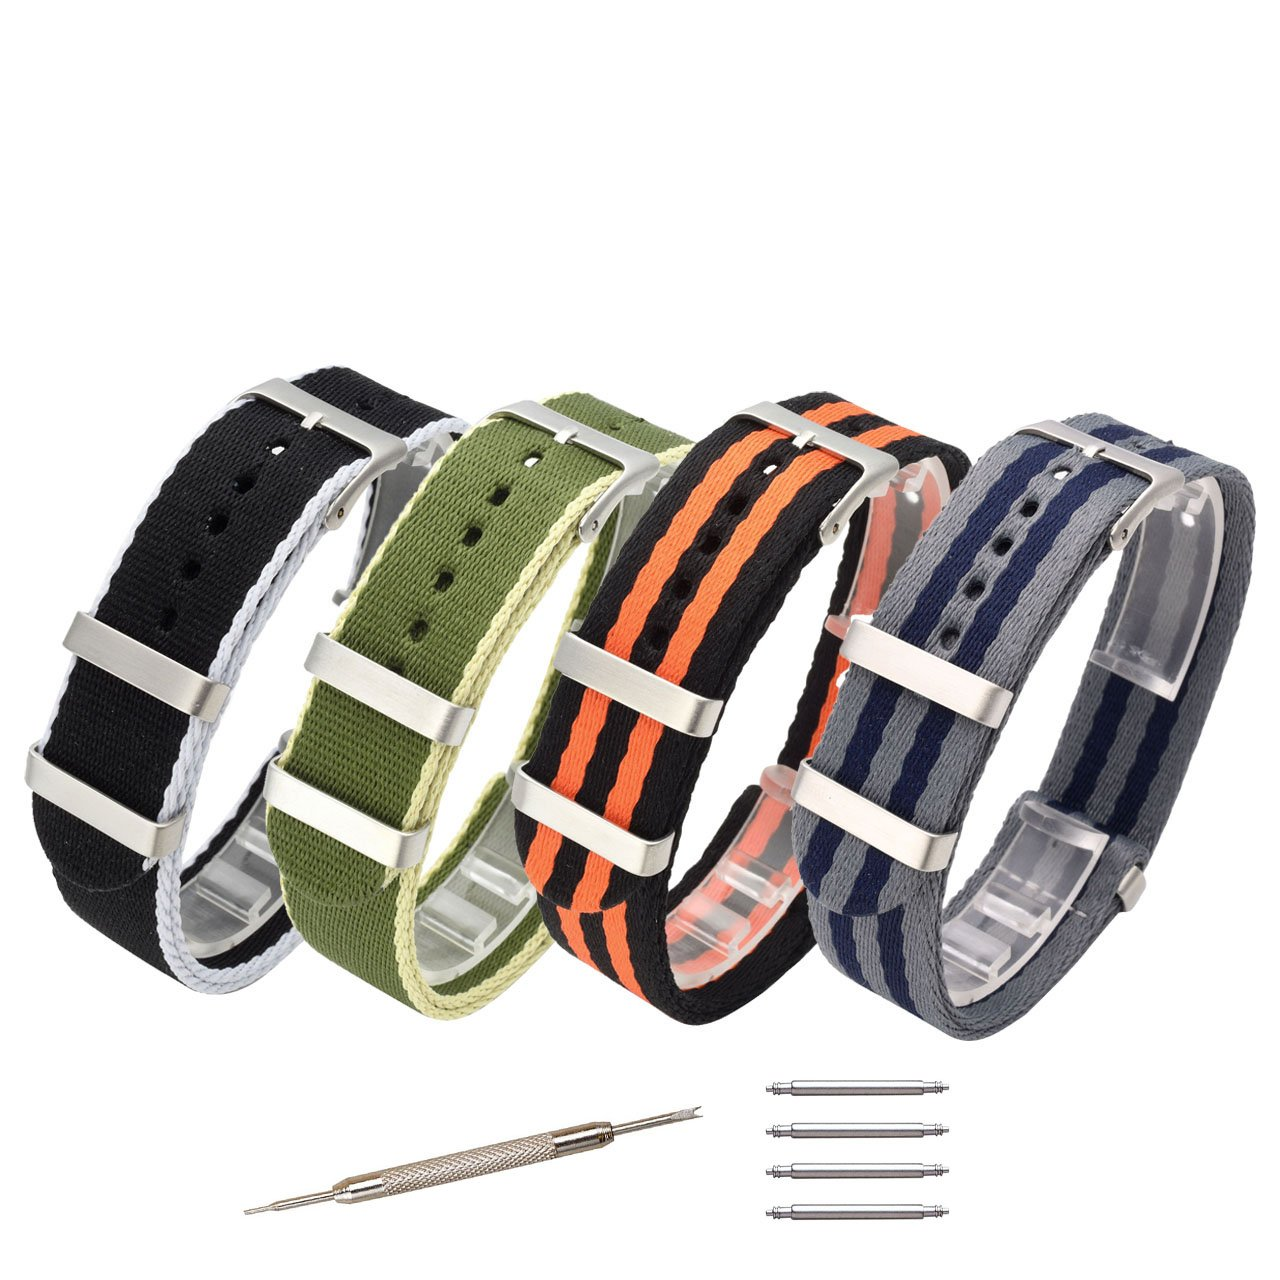 Top Plaza 20mm NATO Nylon Watch Band, Quick Release Premium Ballistic Nylon Straps, Replacement Wristband with Adjustable Metal Clasp for Men Women - Pack of 4#2